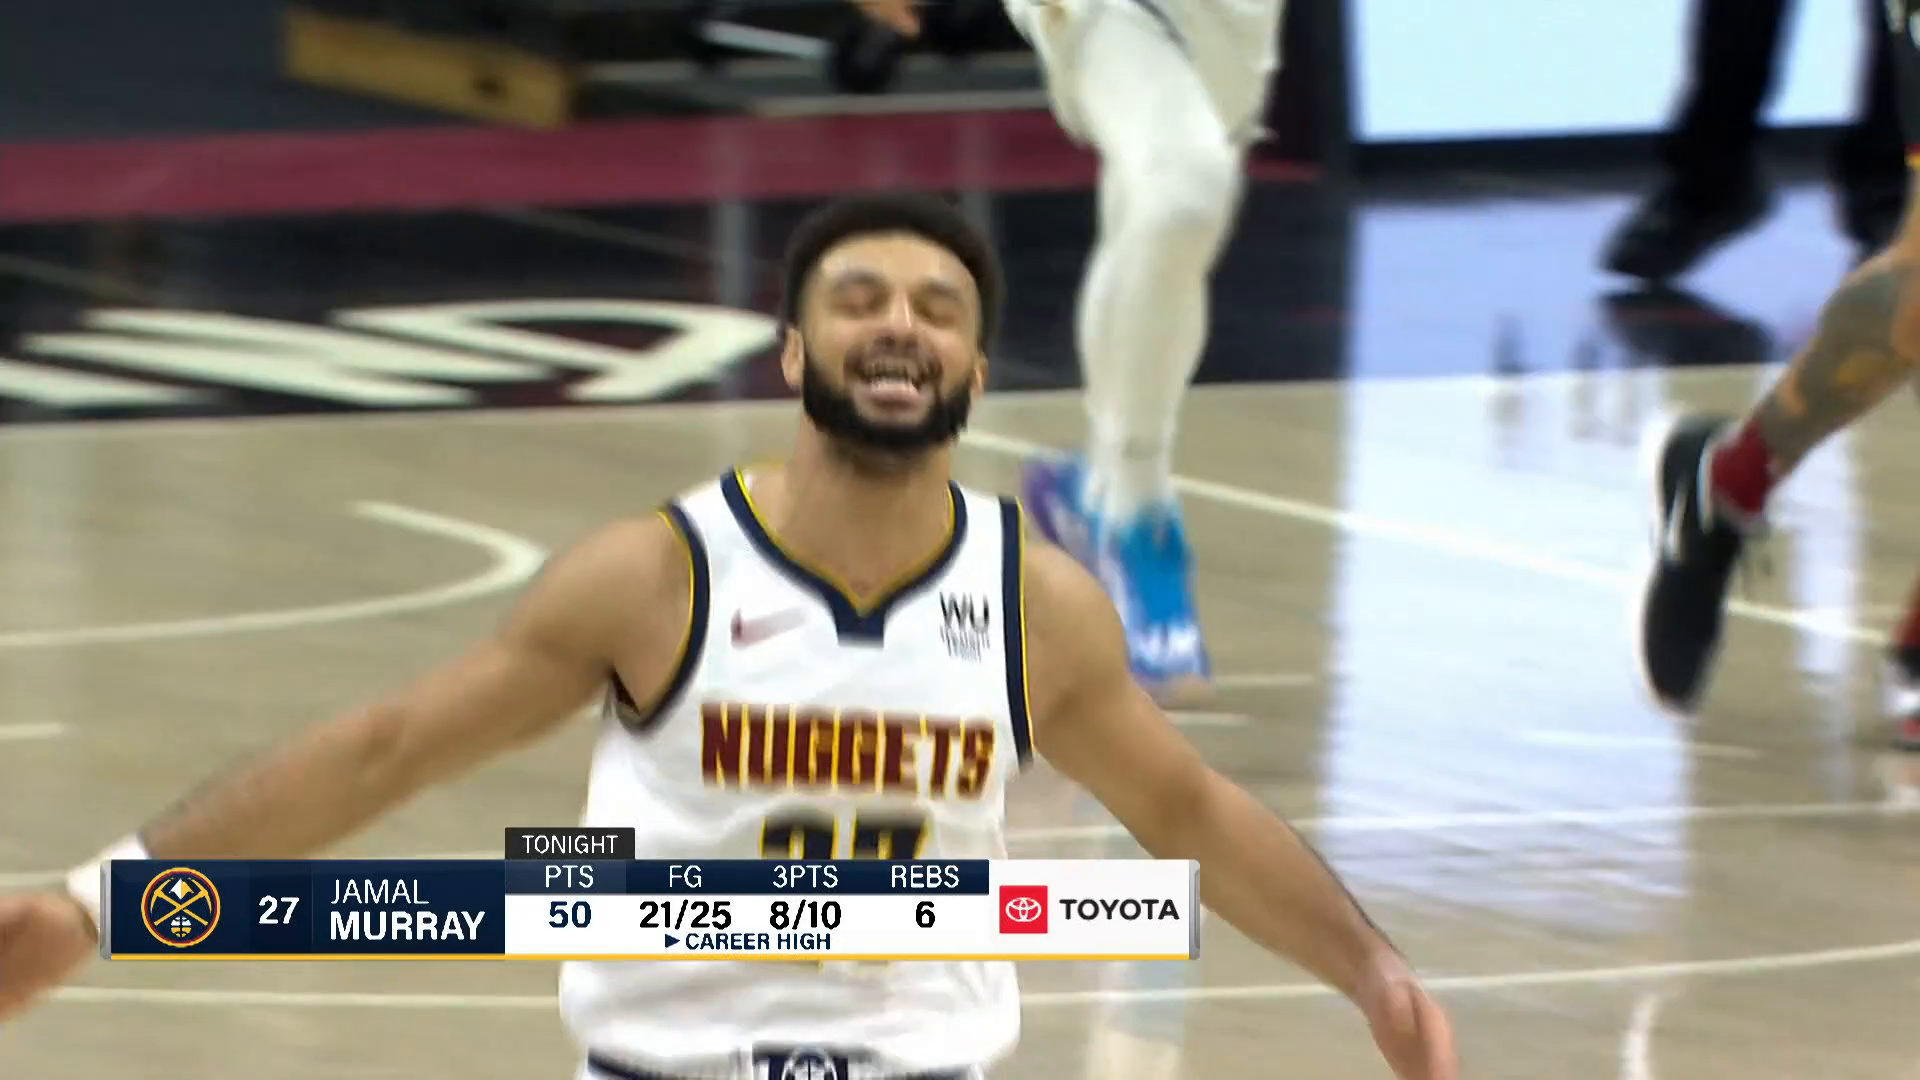 Toyota Game Recap: Nuggets rout Cavs off Jamal Murray's 50-point night (02/19/2021)